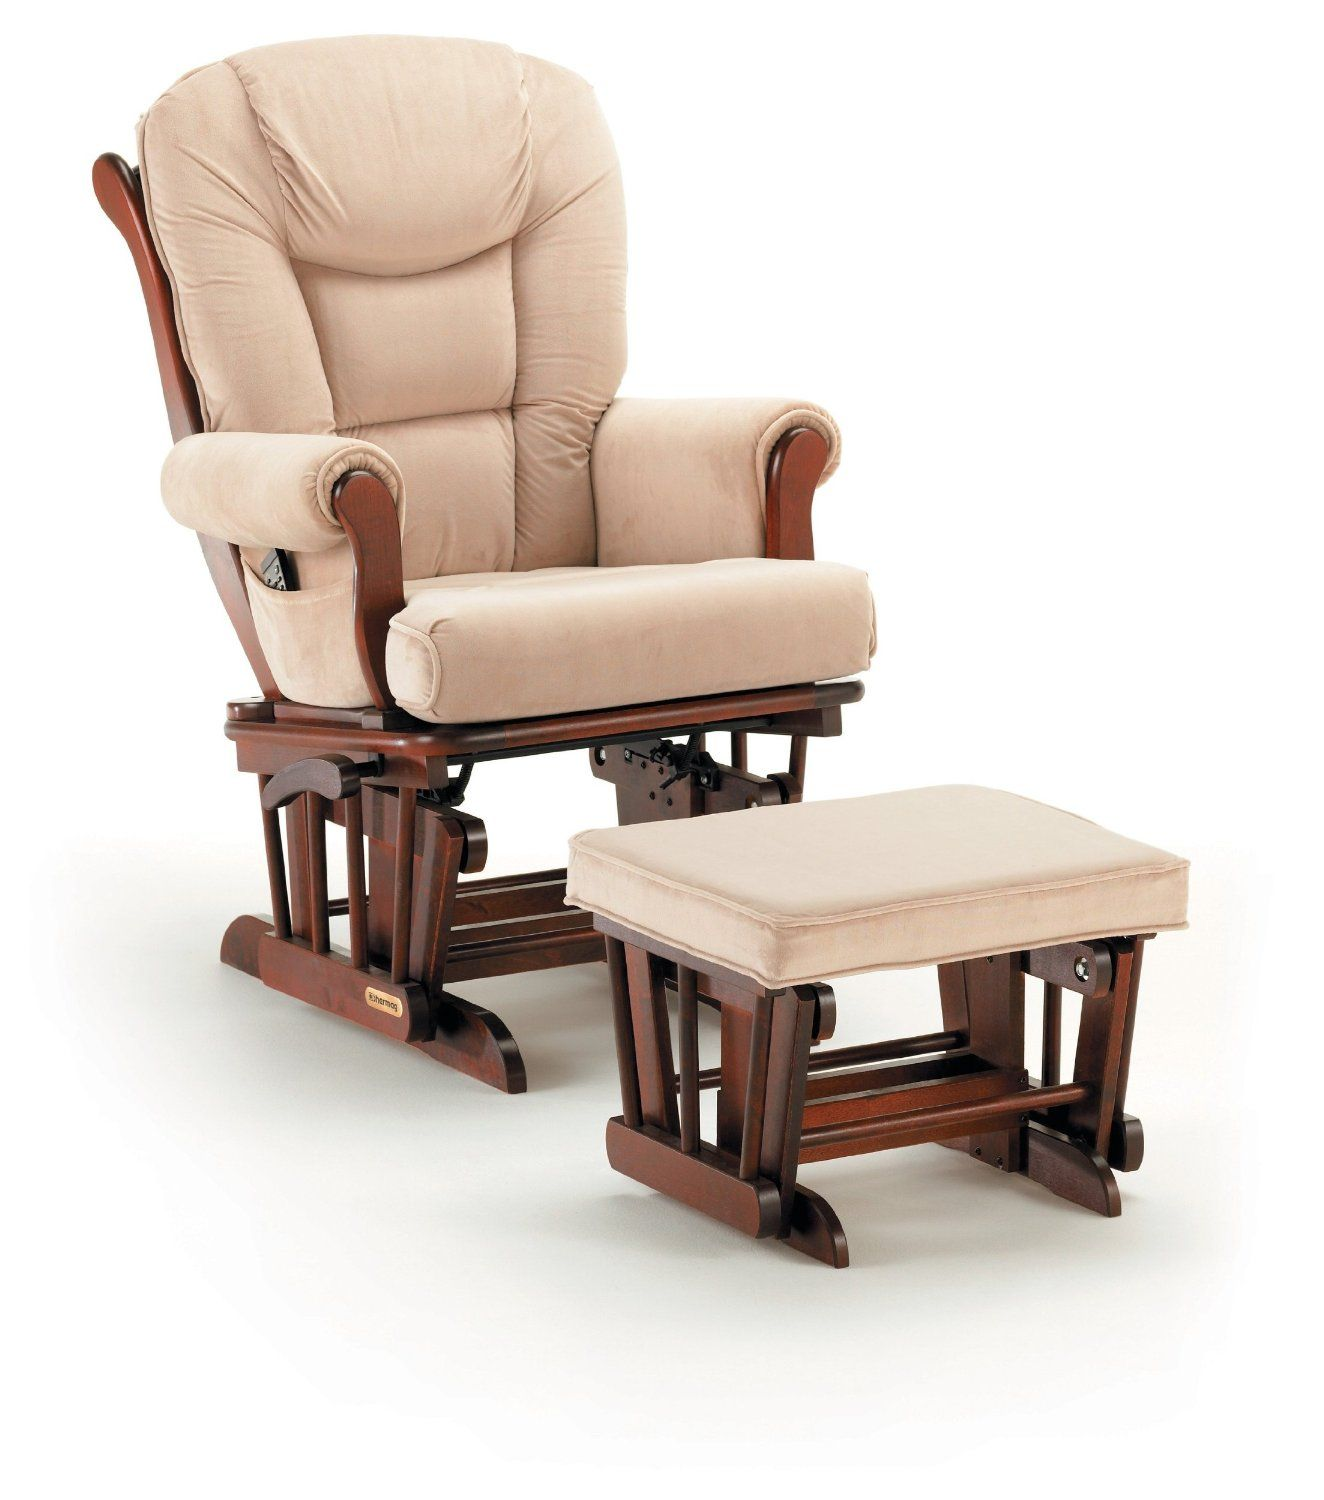 Shermag Glider Provides Maximum Support And Comfort